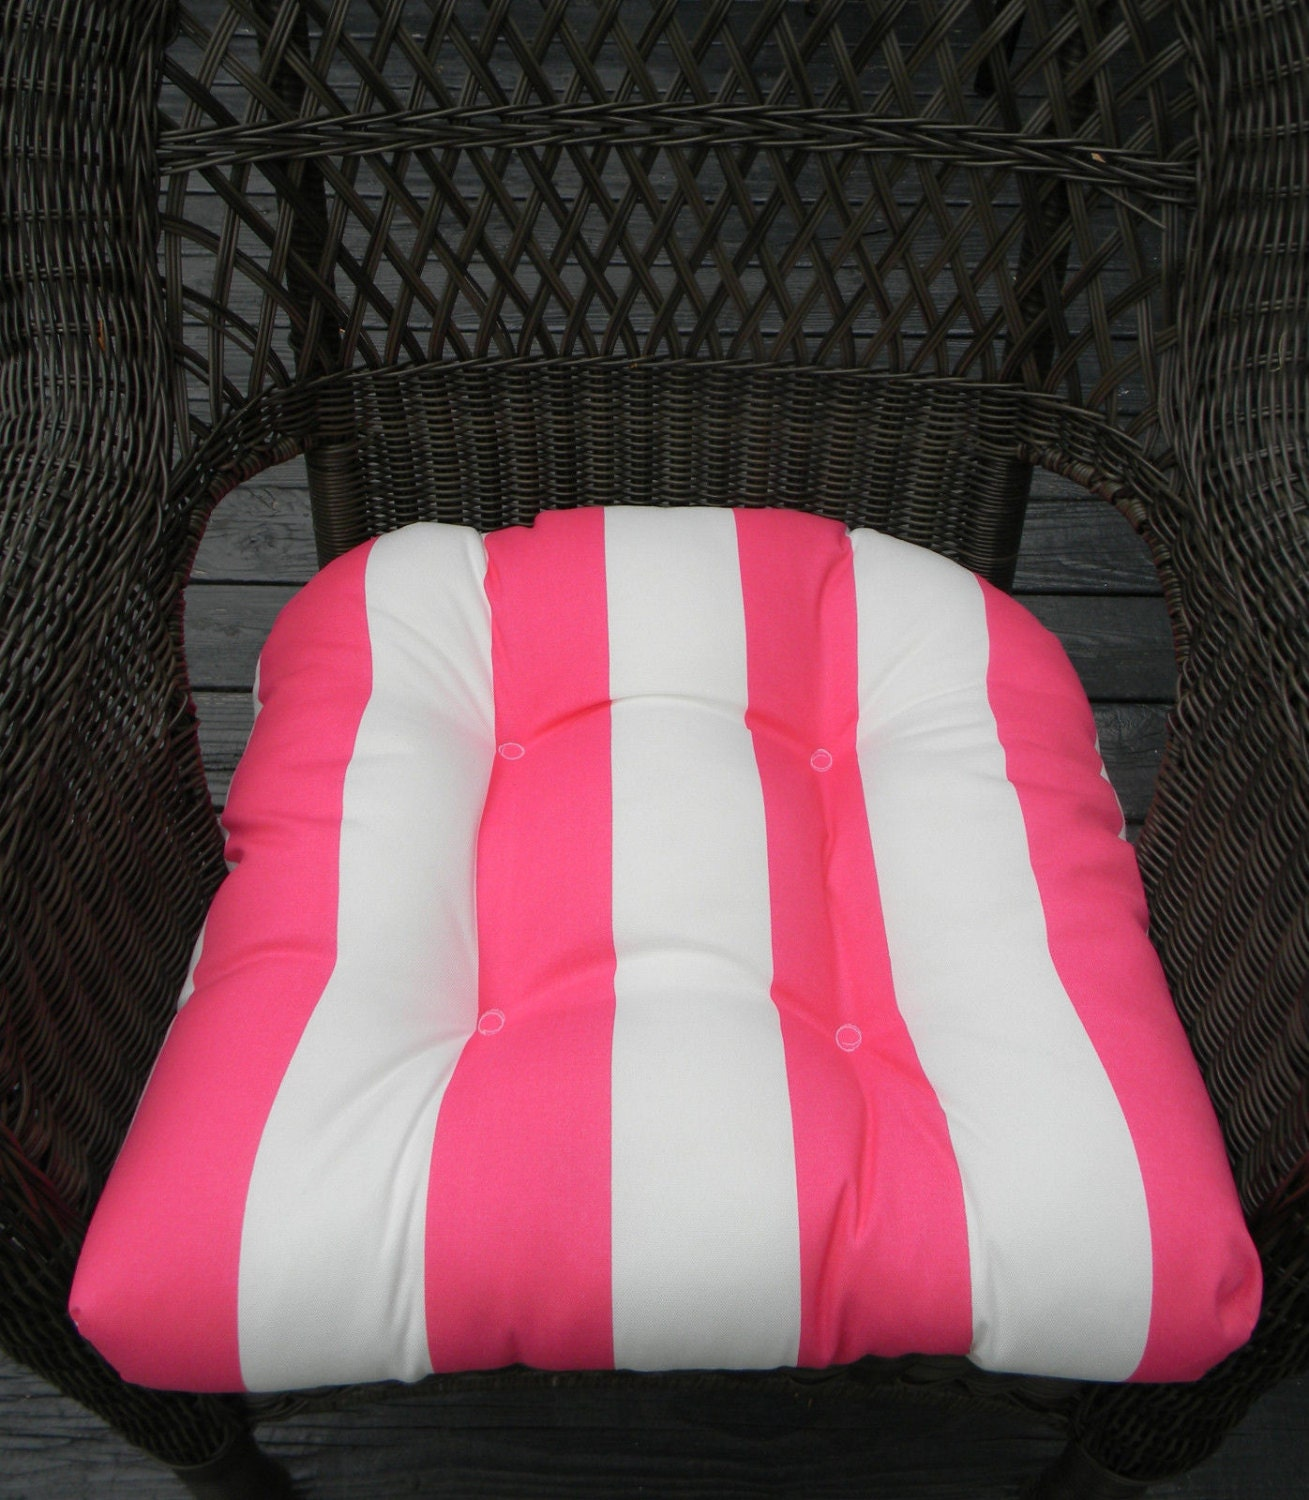 indoor outdoor universal wicker chair cushion pink and. Black Bedroom Furniture Sets. Home Design Ideas